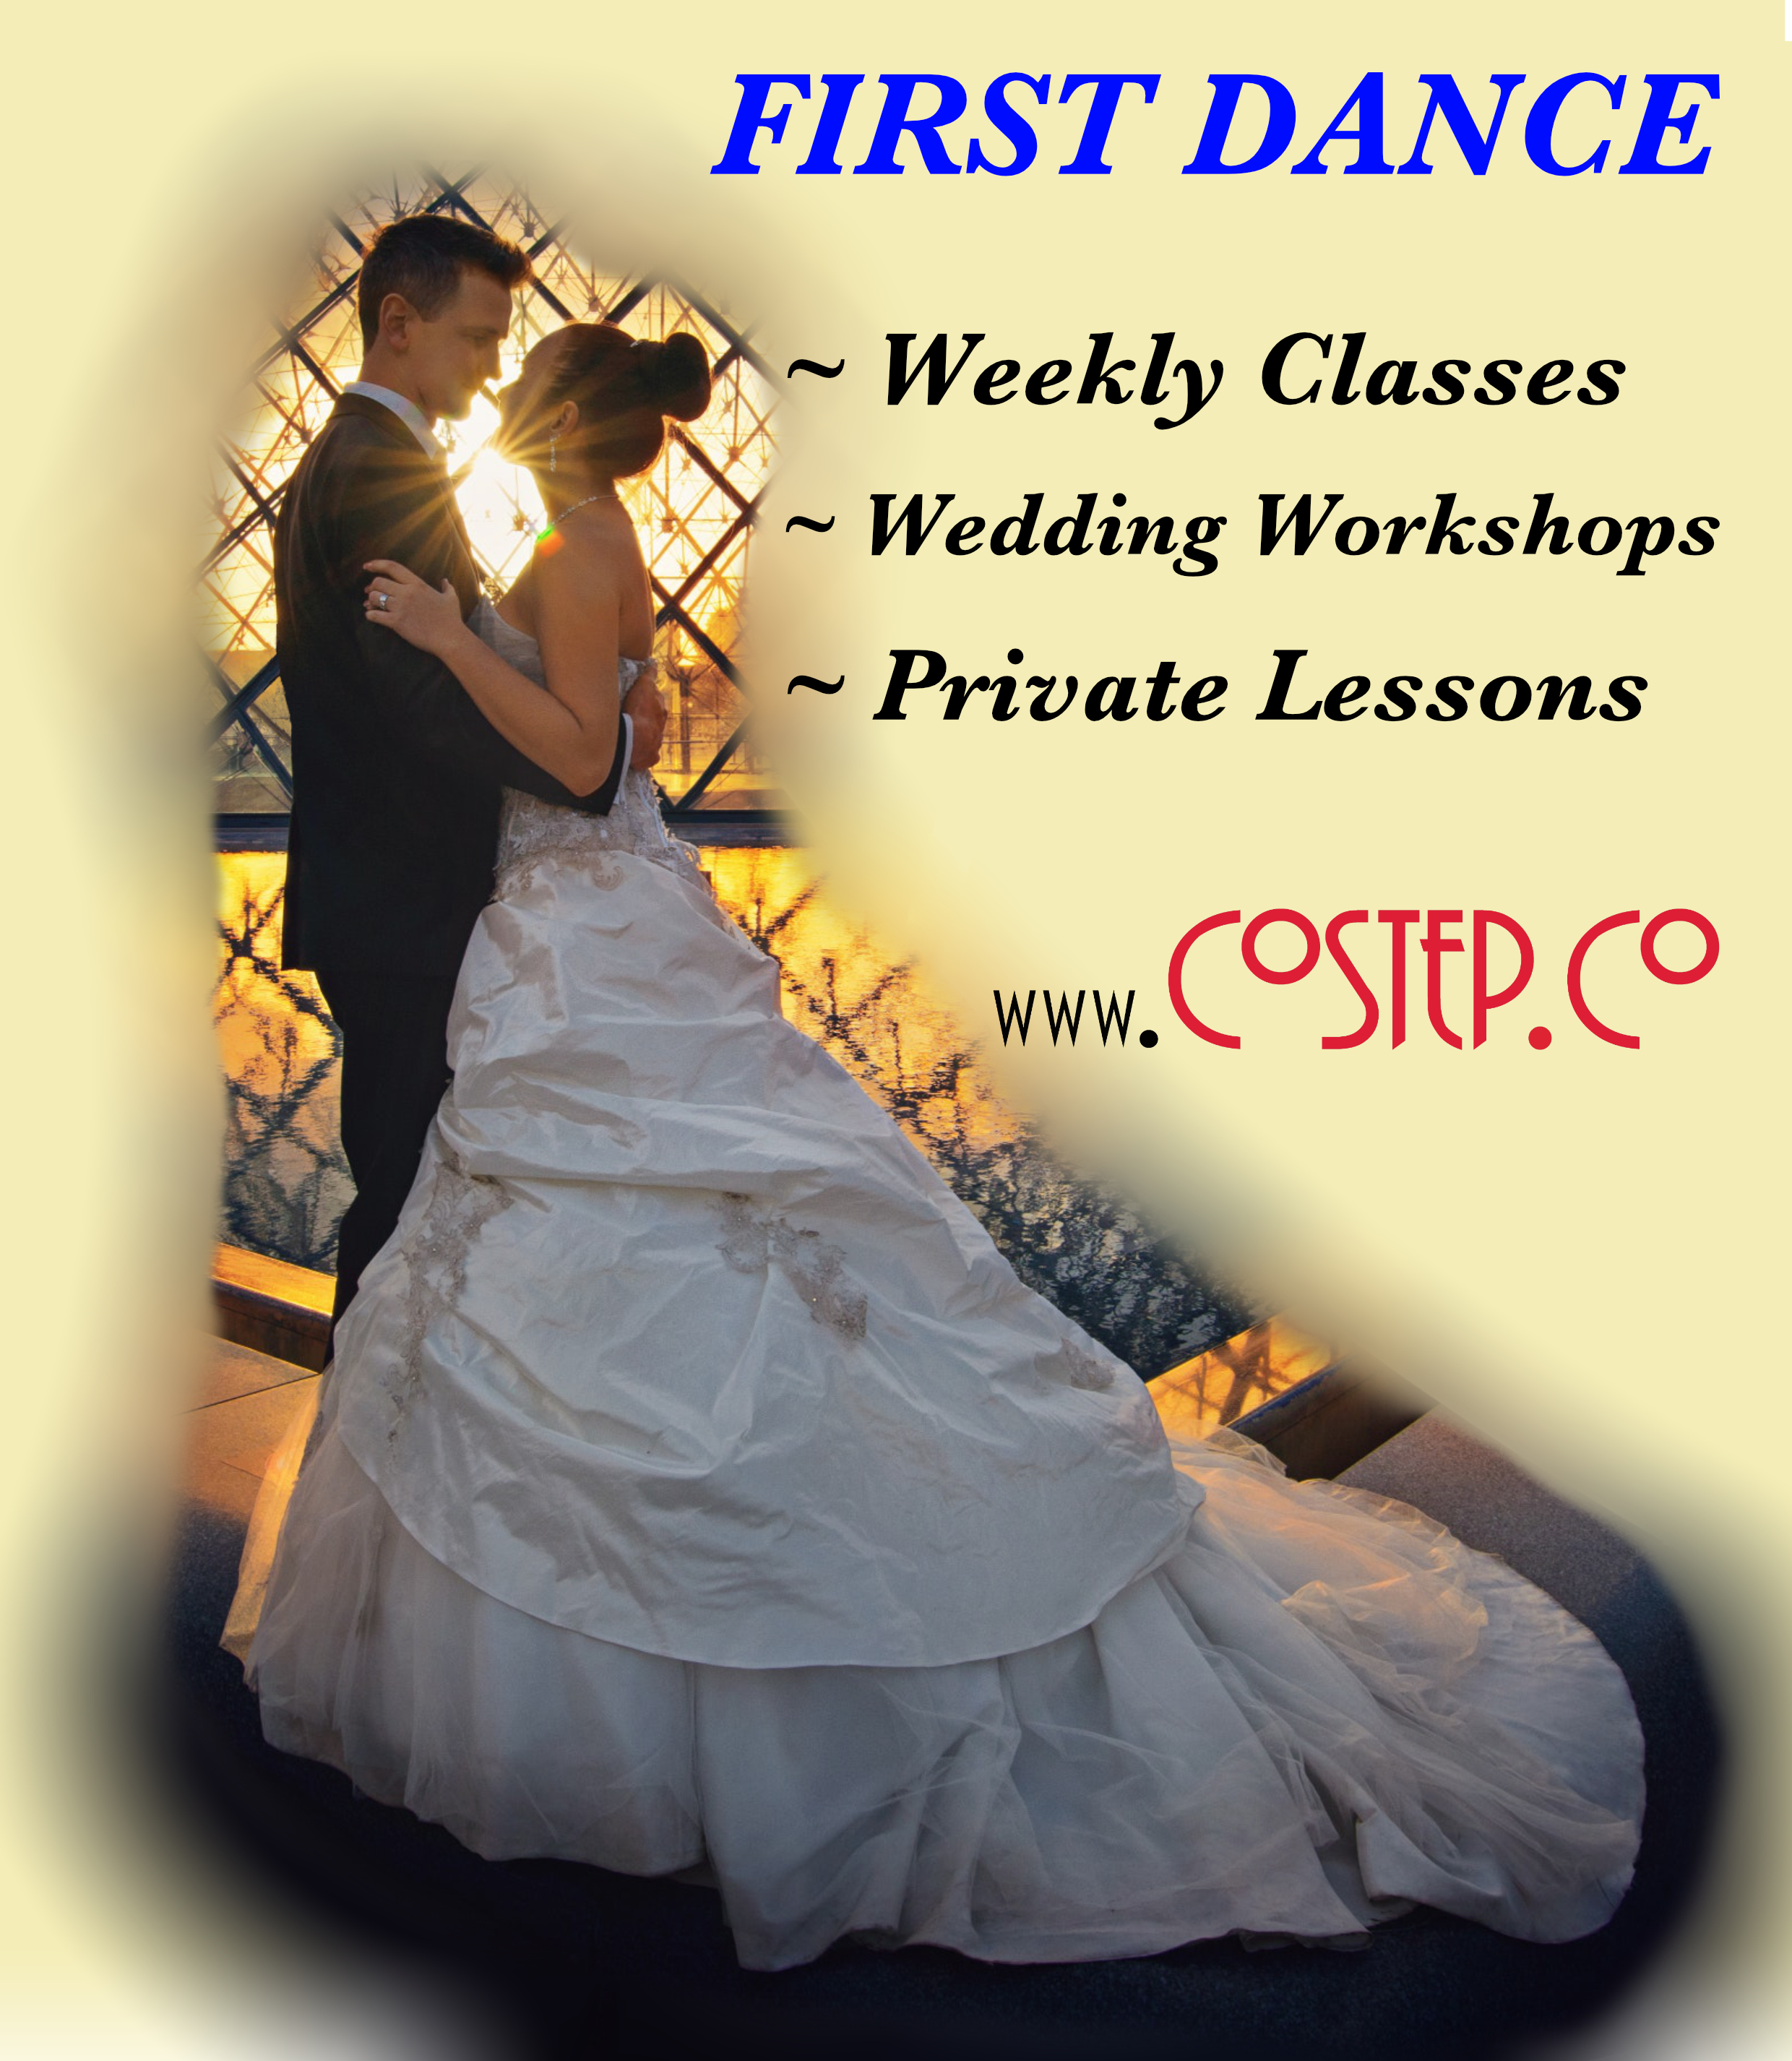 Wedding First Dance Tuition from CoStep.Co